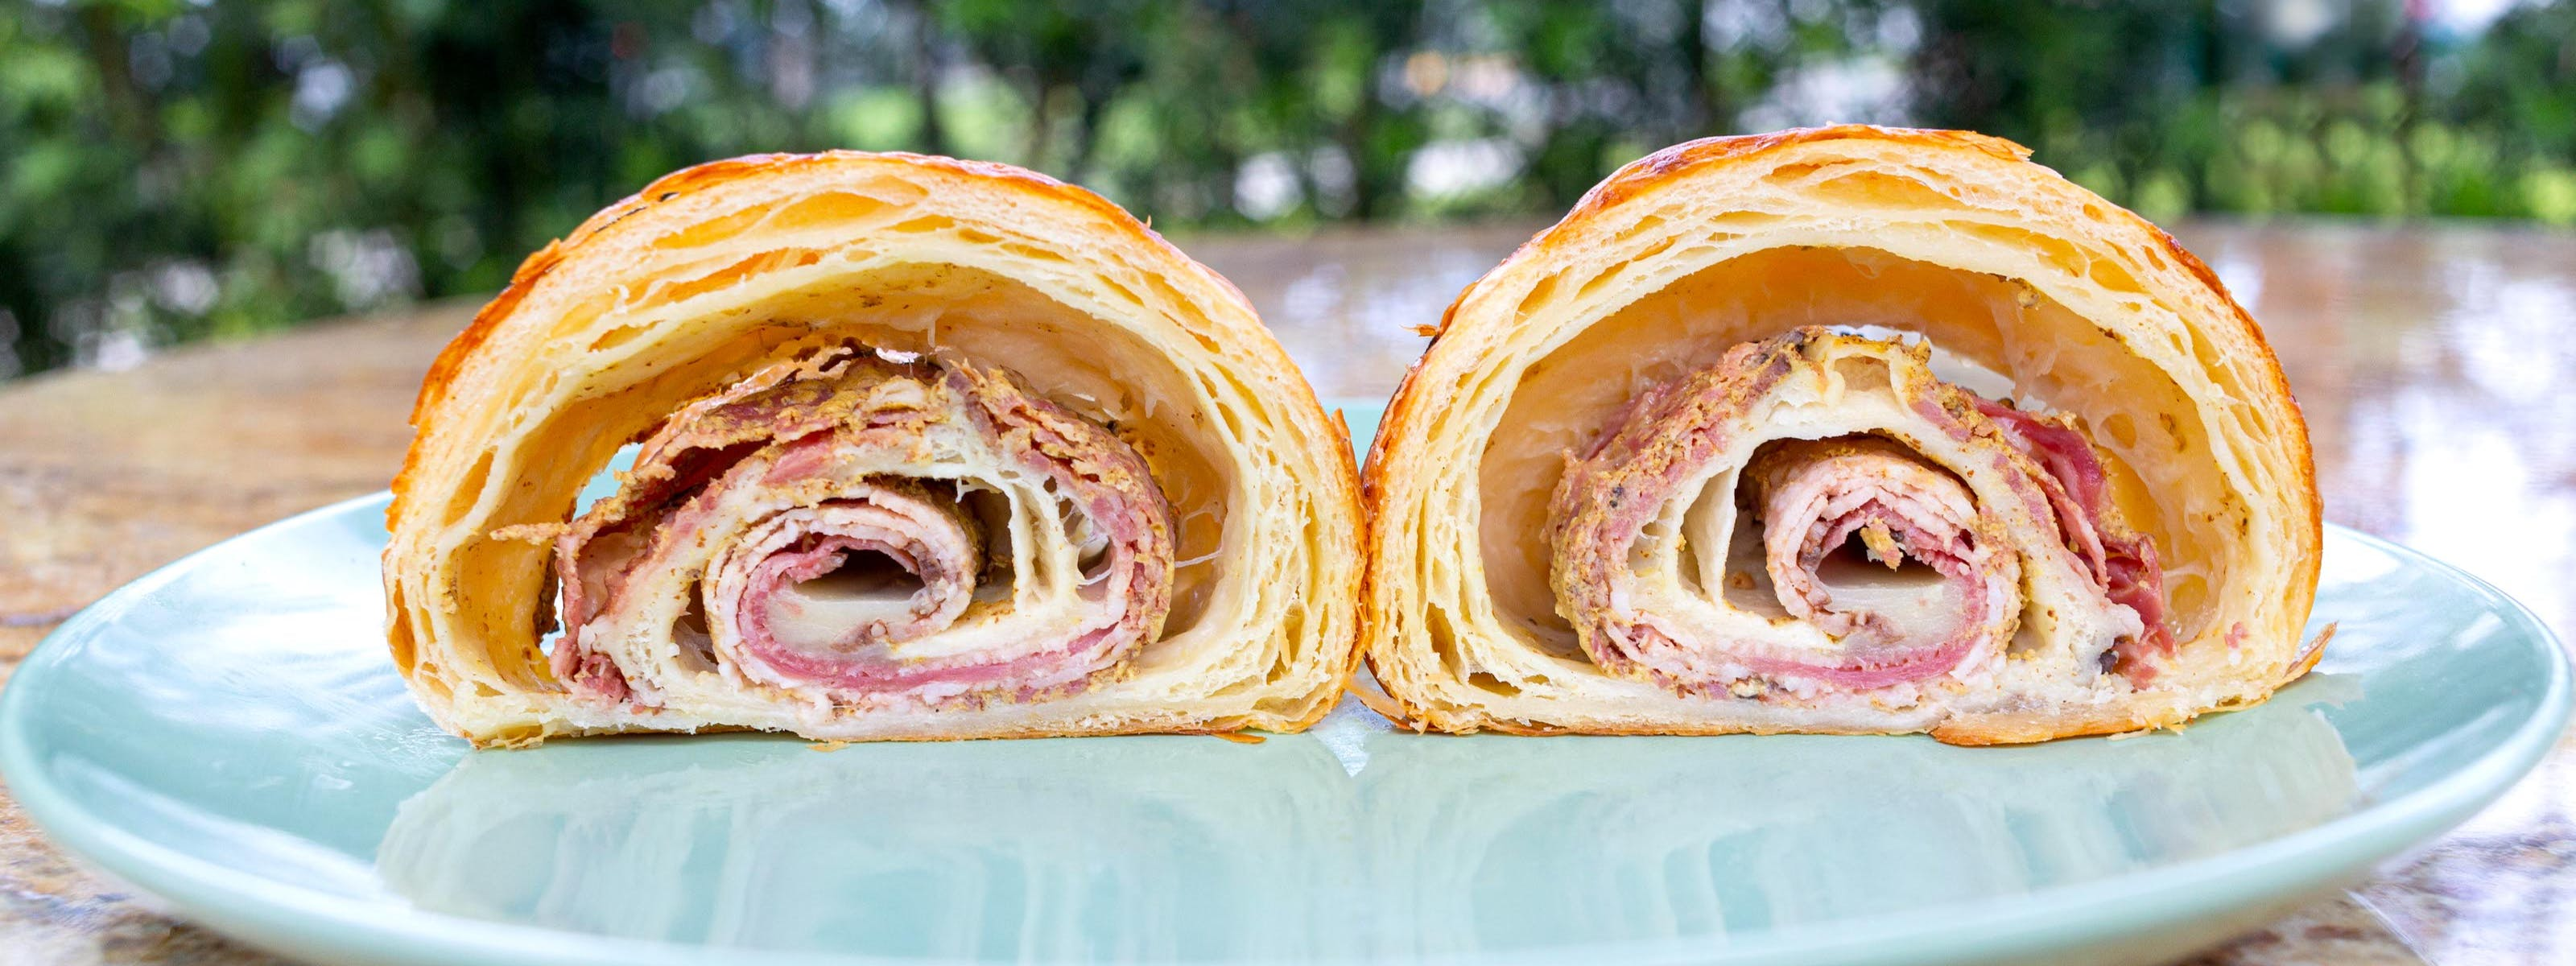 The Best Bakeries In Miami - Miami - The Infatuation